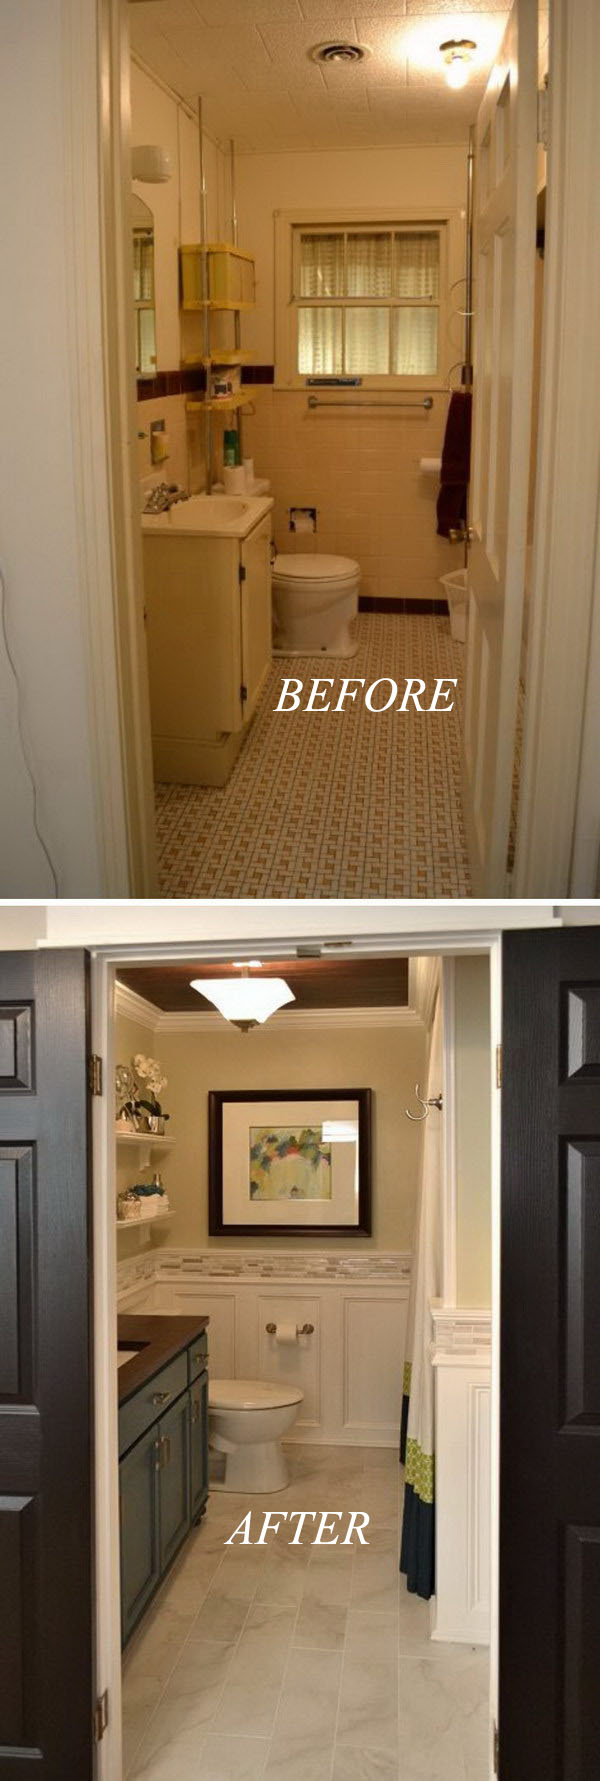 ideas bathroom remodel before and after 20 awesome bathroom makeovers hative 4091